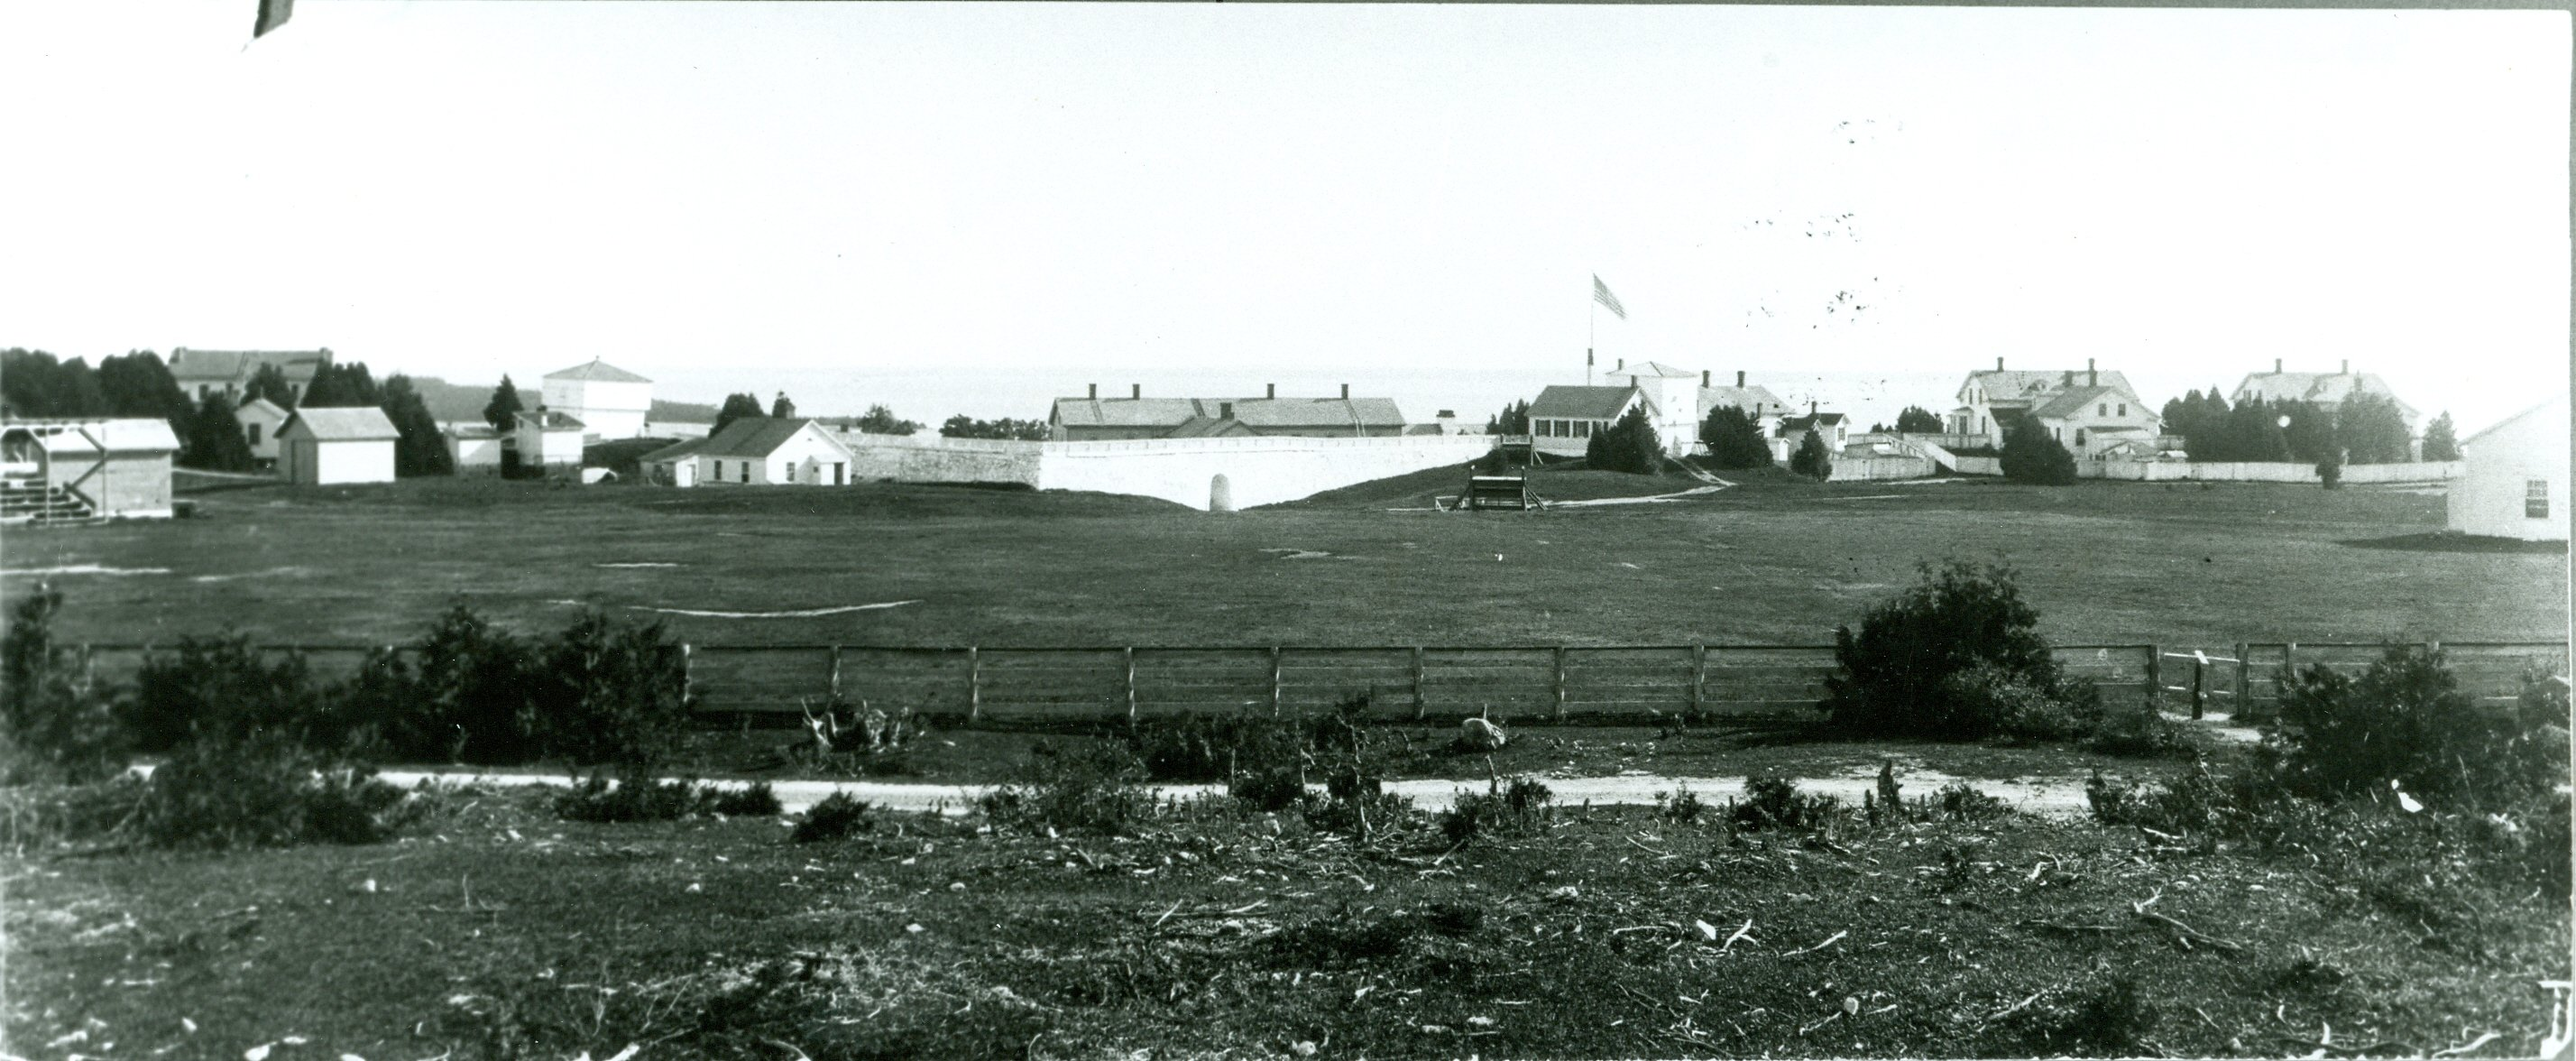 Fort Mackinac from the north, ca. 1890. The baseball field can be seen at center left, with the grandstand at extreme left.